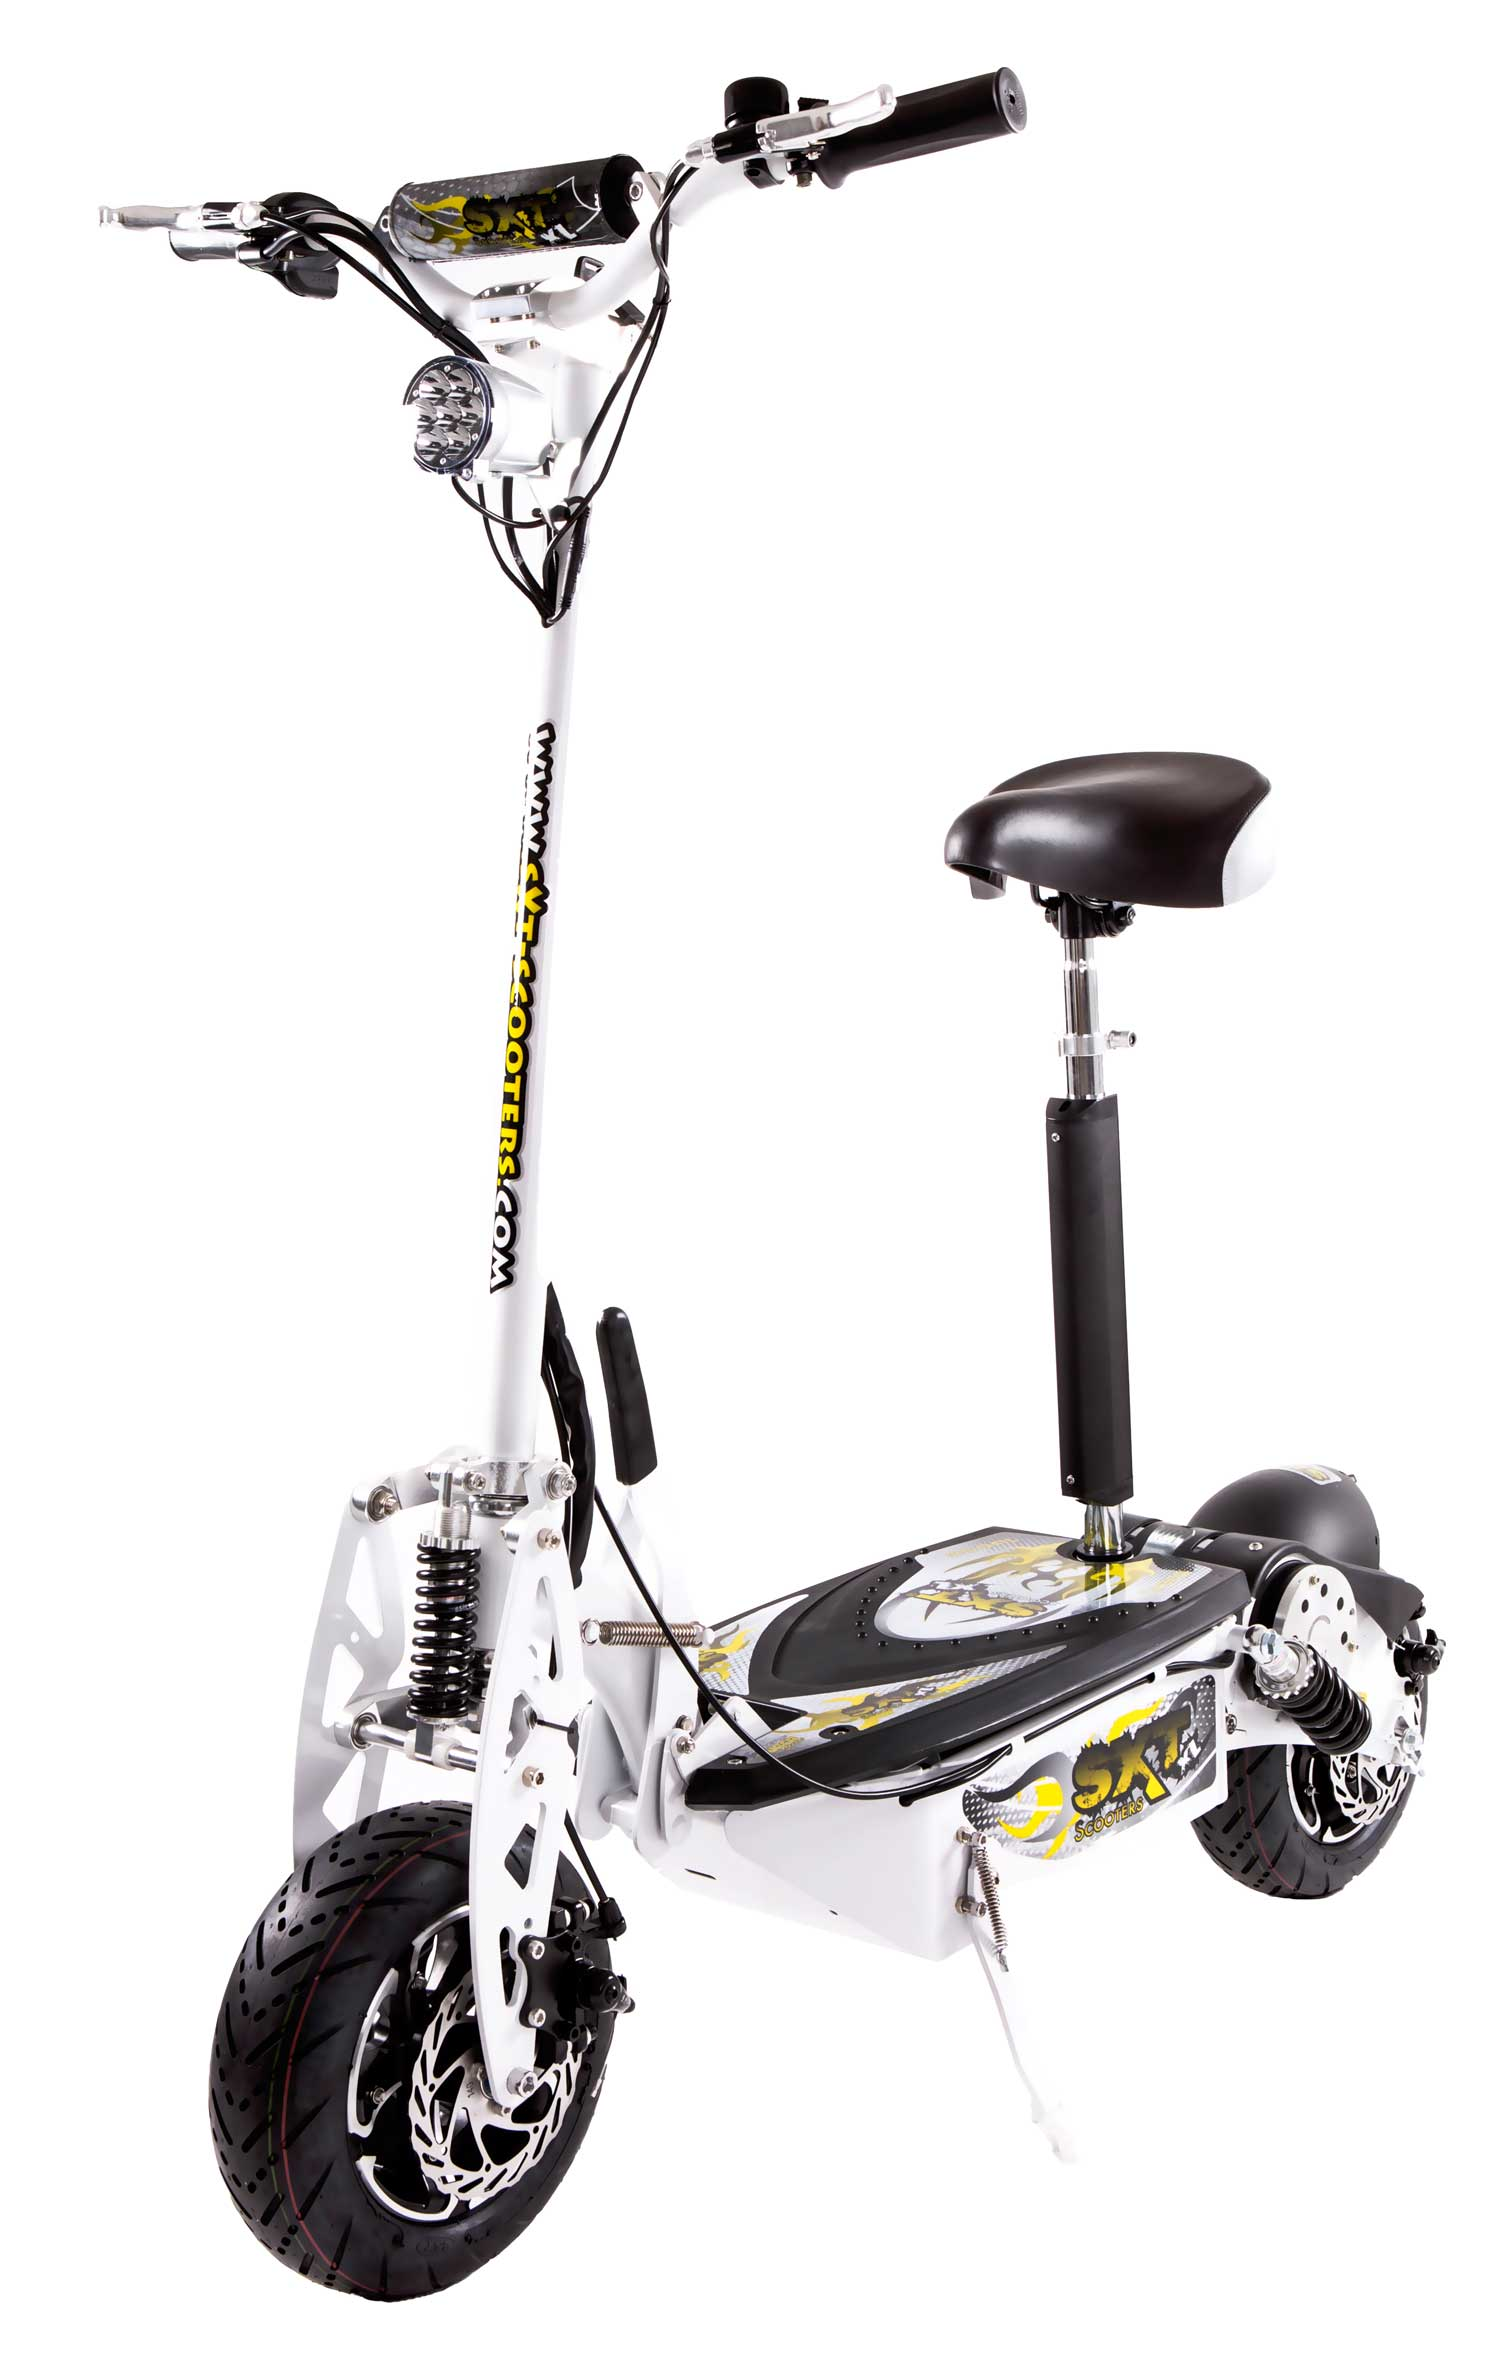 sxt your online escooter store sxt1600 xl electric scooter white 48v 20ah. Black Bedroom Furniture Sets. Home Design Ideas